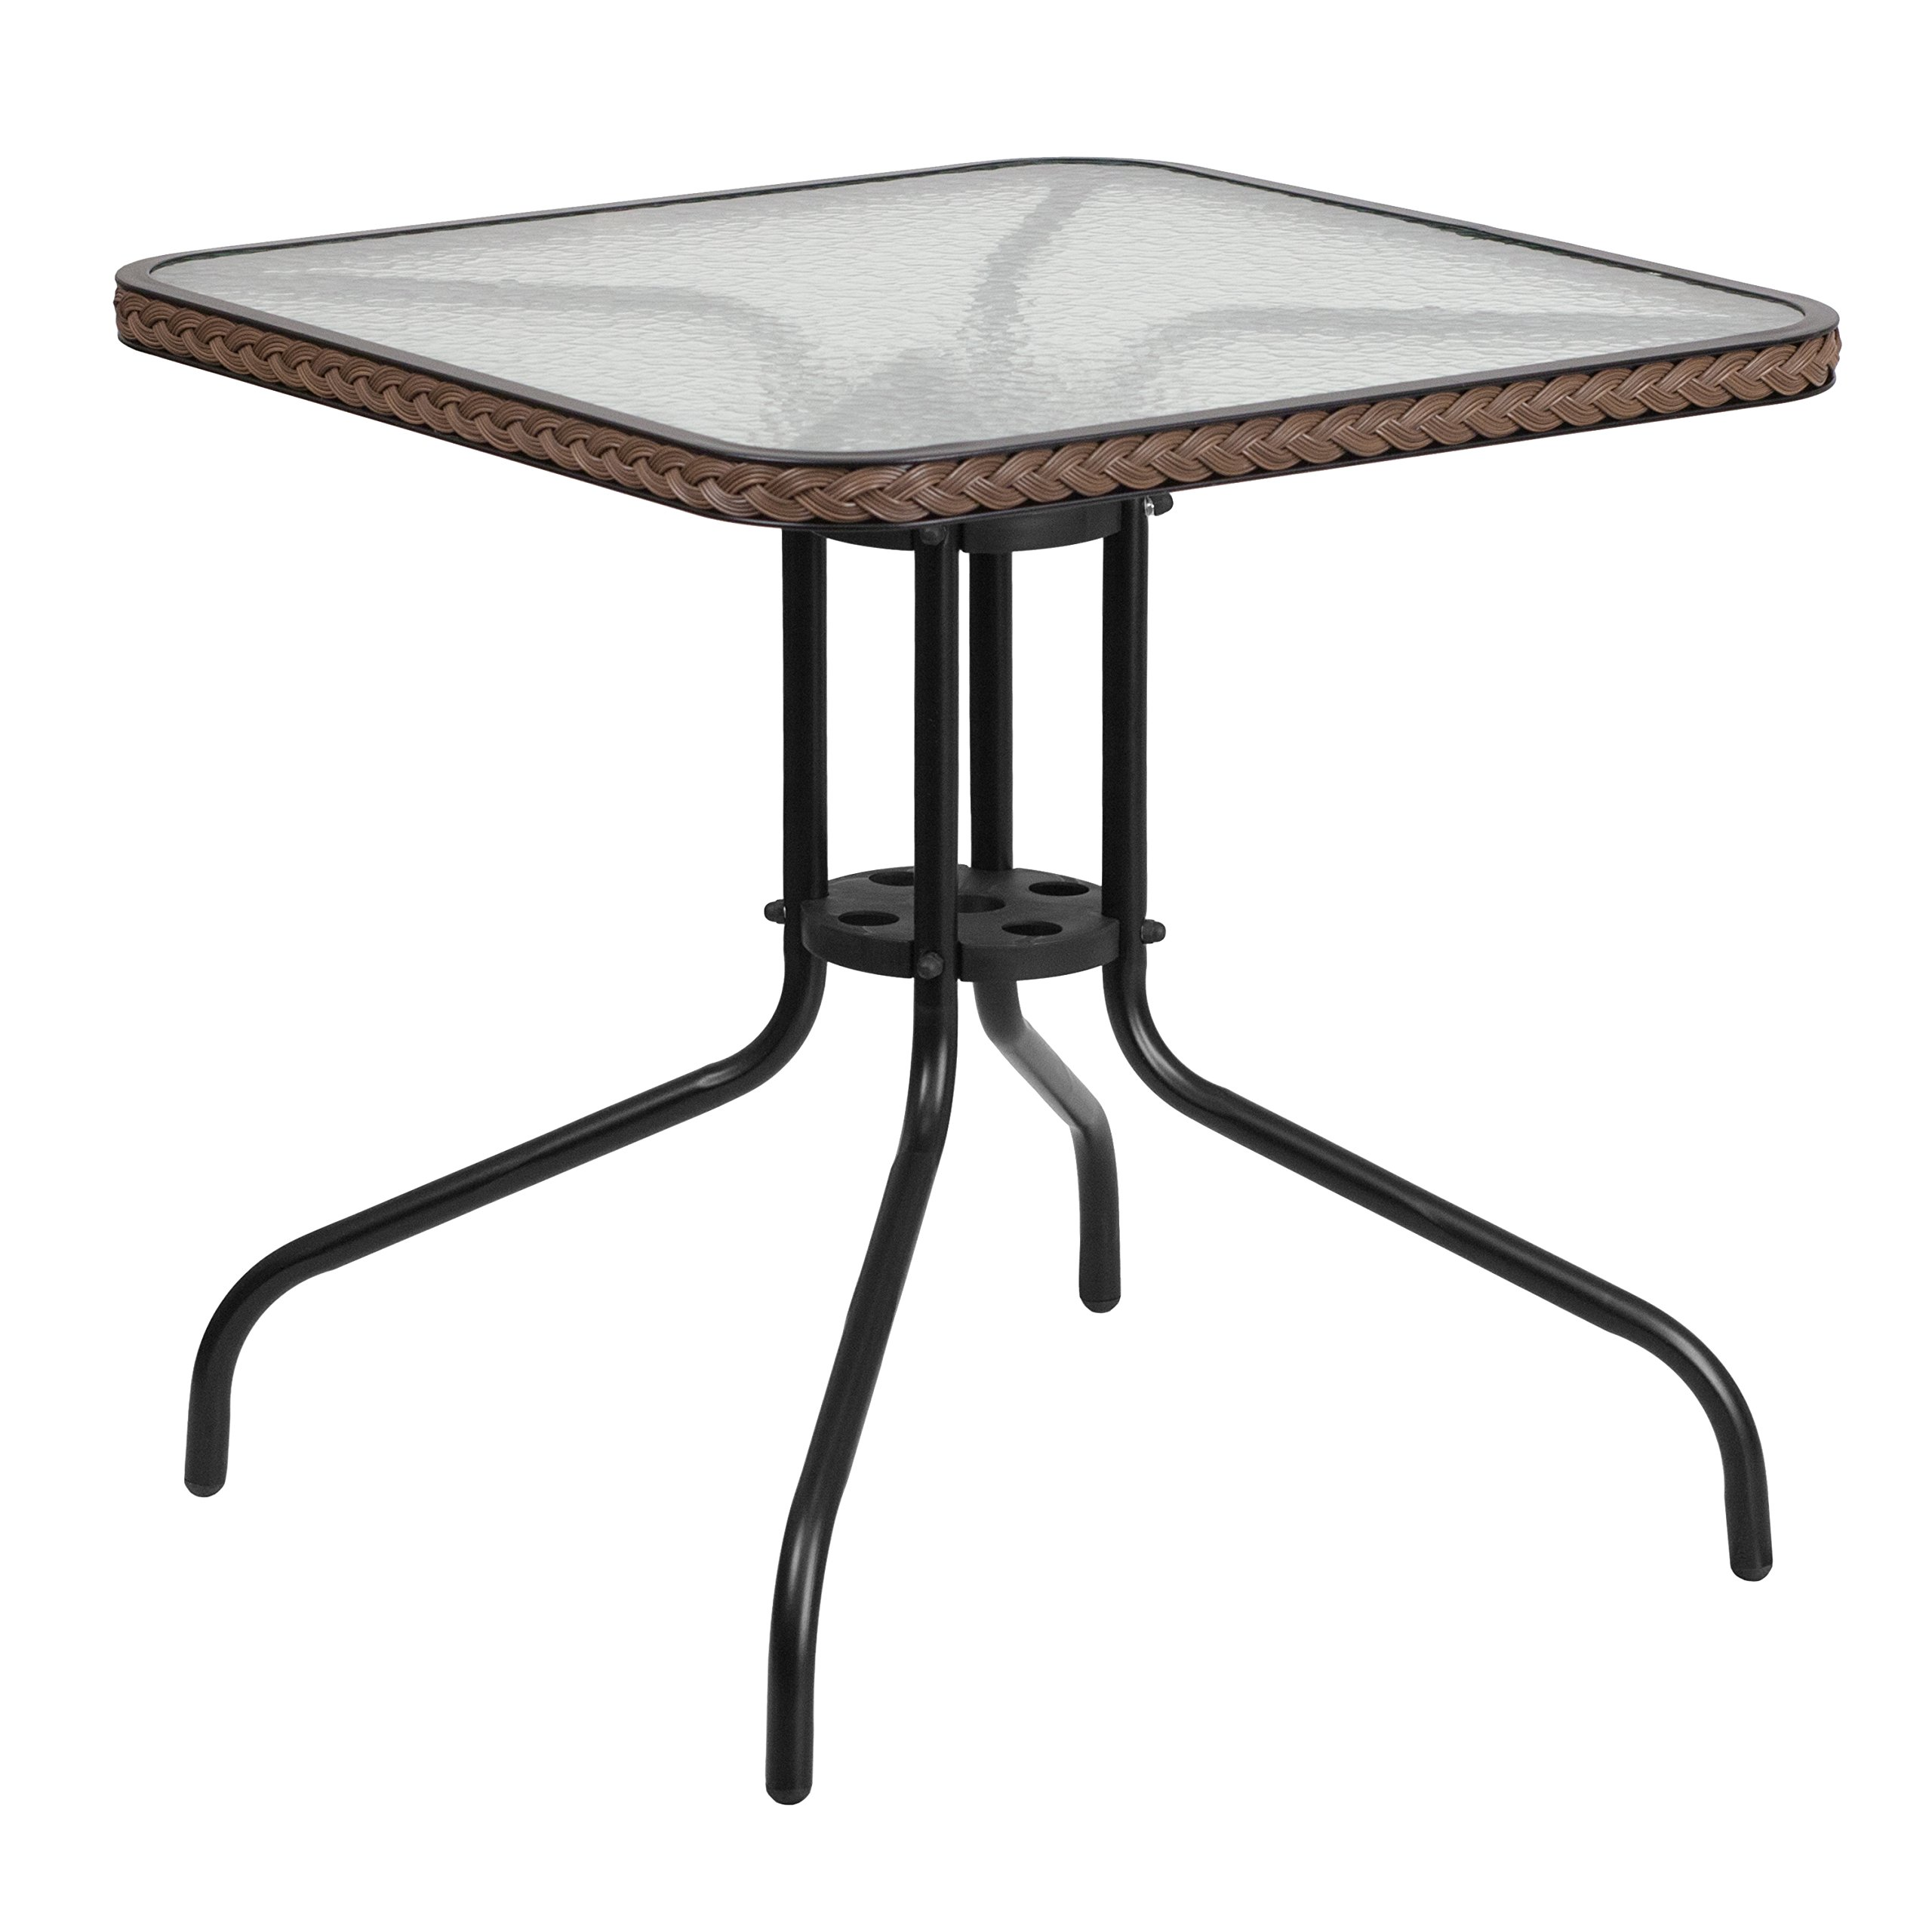 28'' Square Tempered Glass Metal Table with Dark Brown Rattan Edging by Alamont (Image #1)